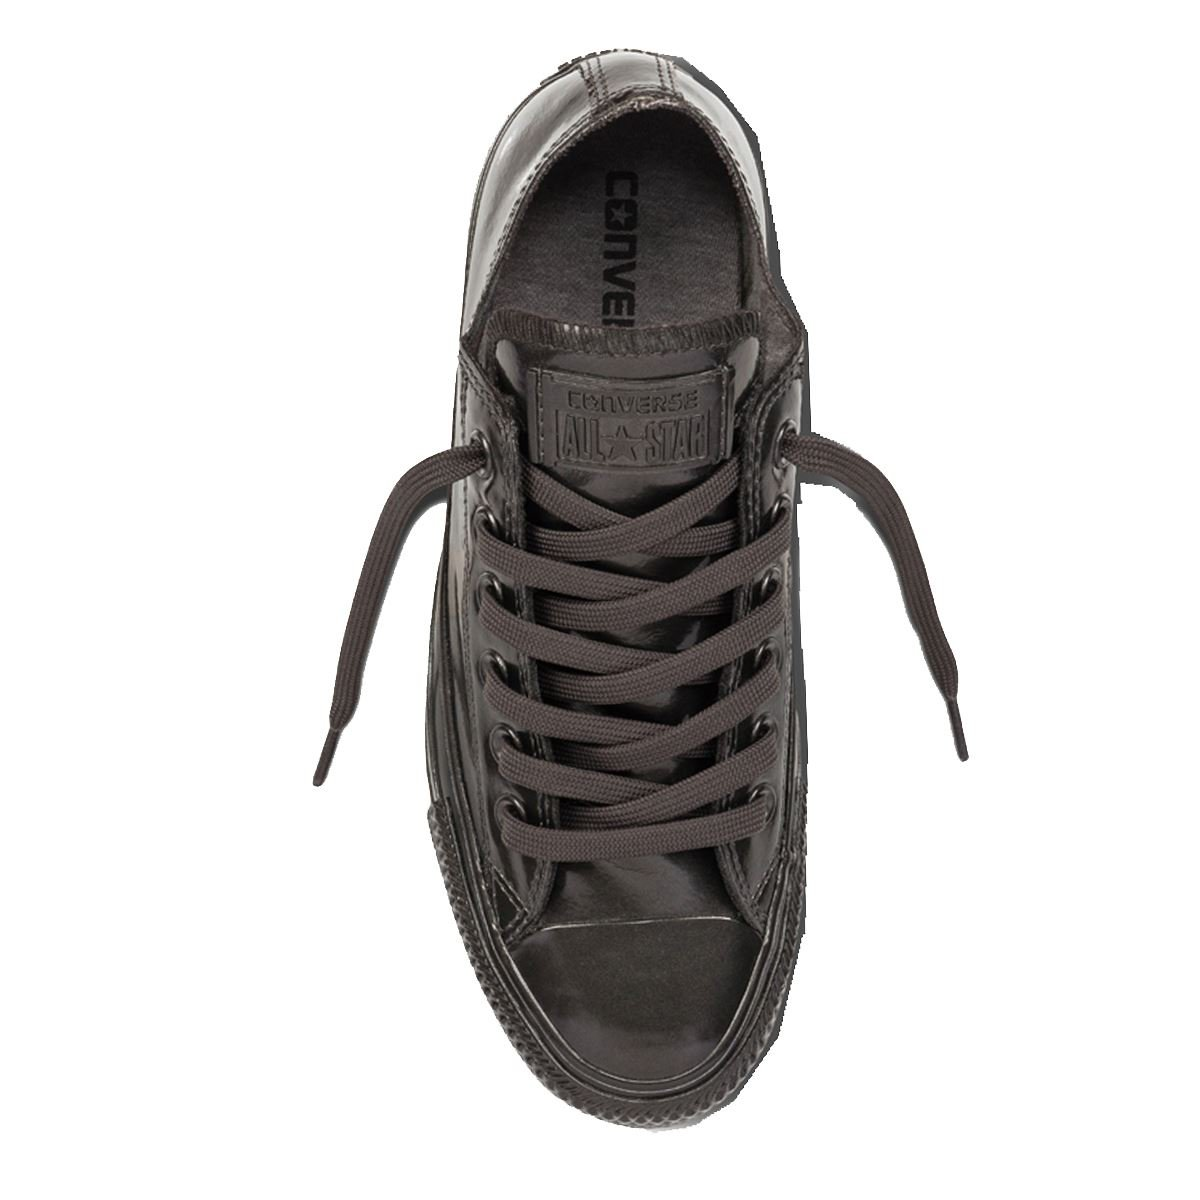 Converse Chuck Taylor Counter climate rubber water repellent